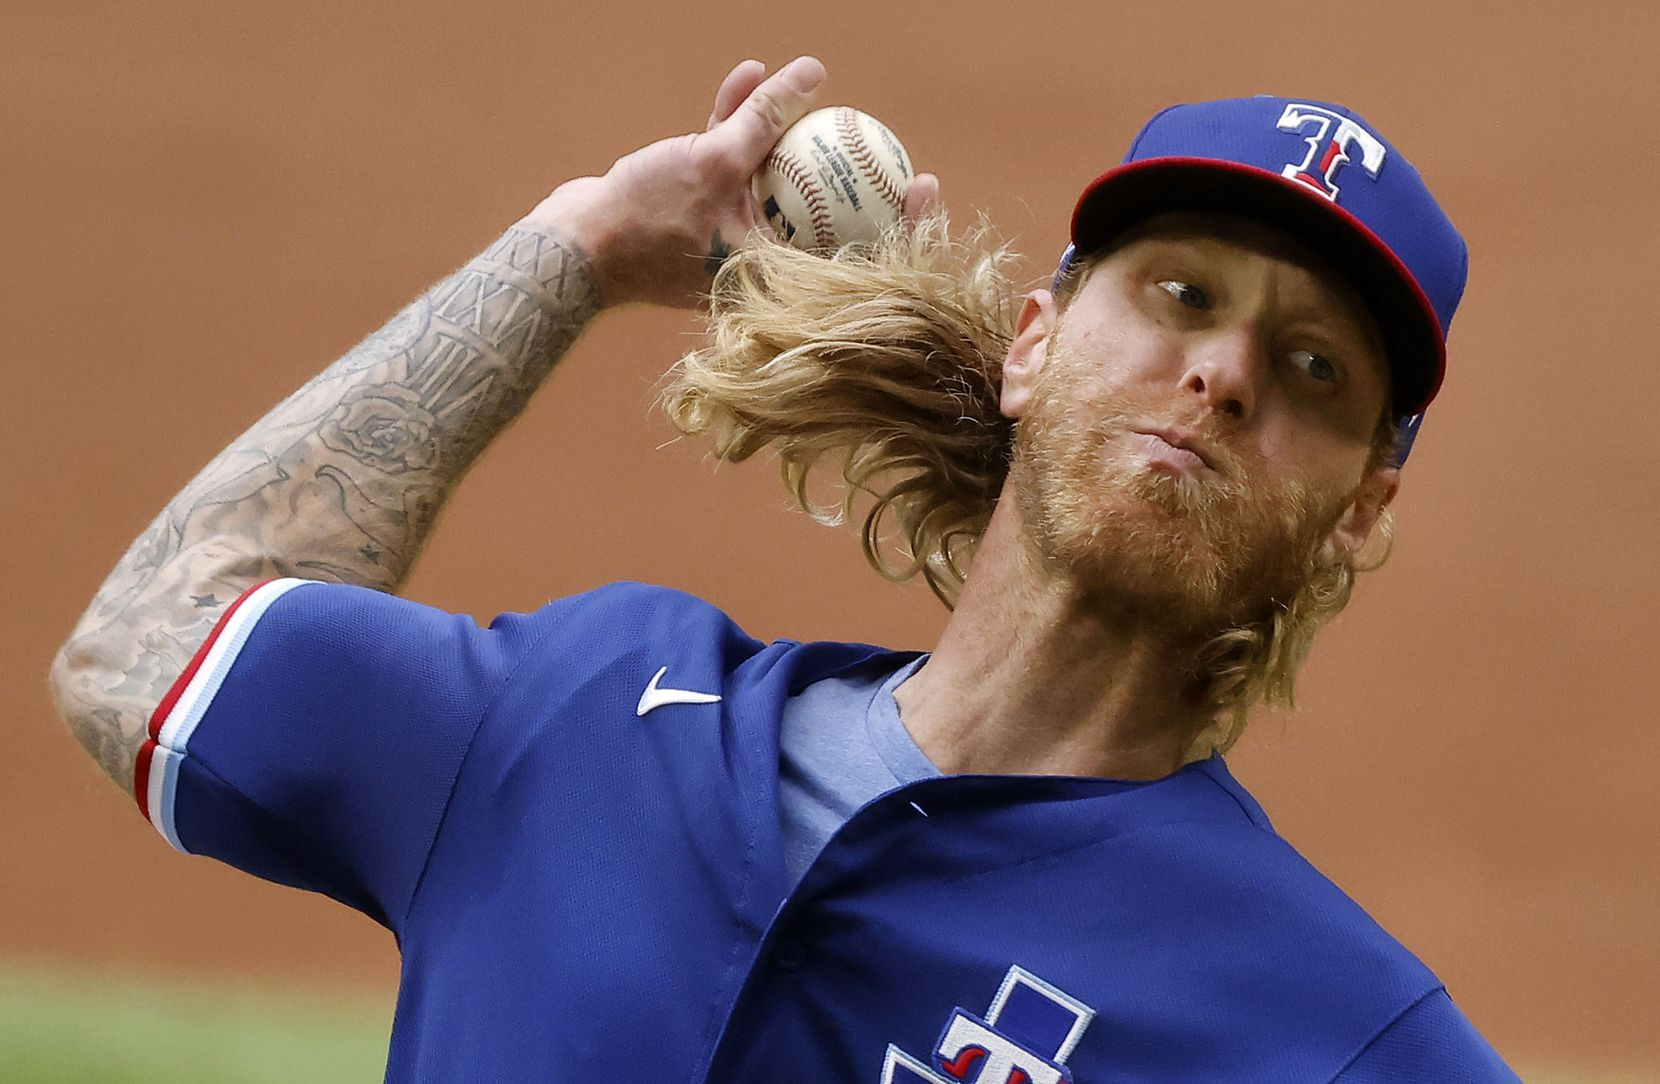 Texas Rangers starting pitcher Mike Foltynewicz (20) throws against the Milwaukee Brewers in the third inning at Globe Life Field in Arlington, Texas. The teams were playing in an exhibition game, Tuesday, March 30, 2021. (Tom Fox/The Dallas Morning News)